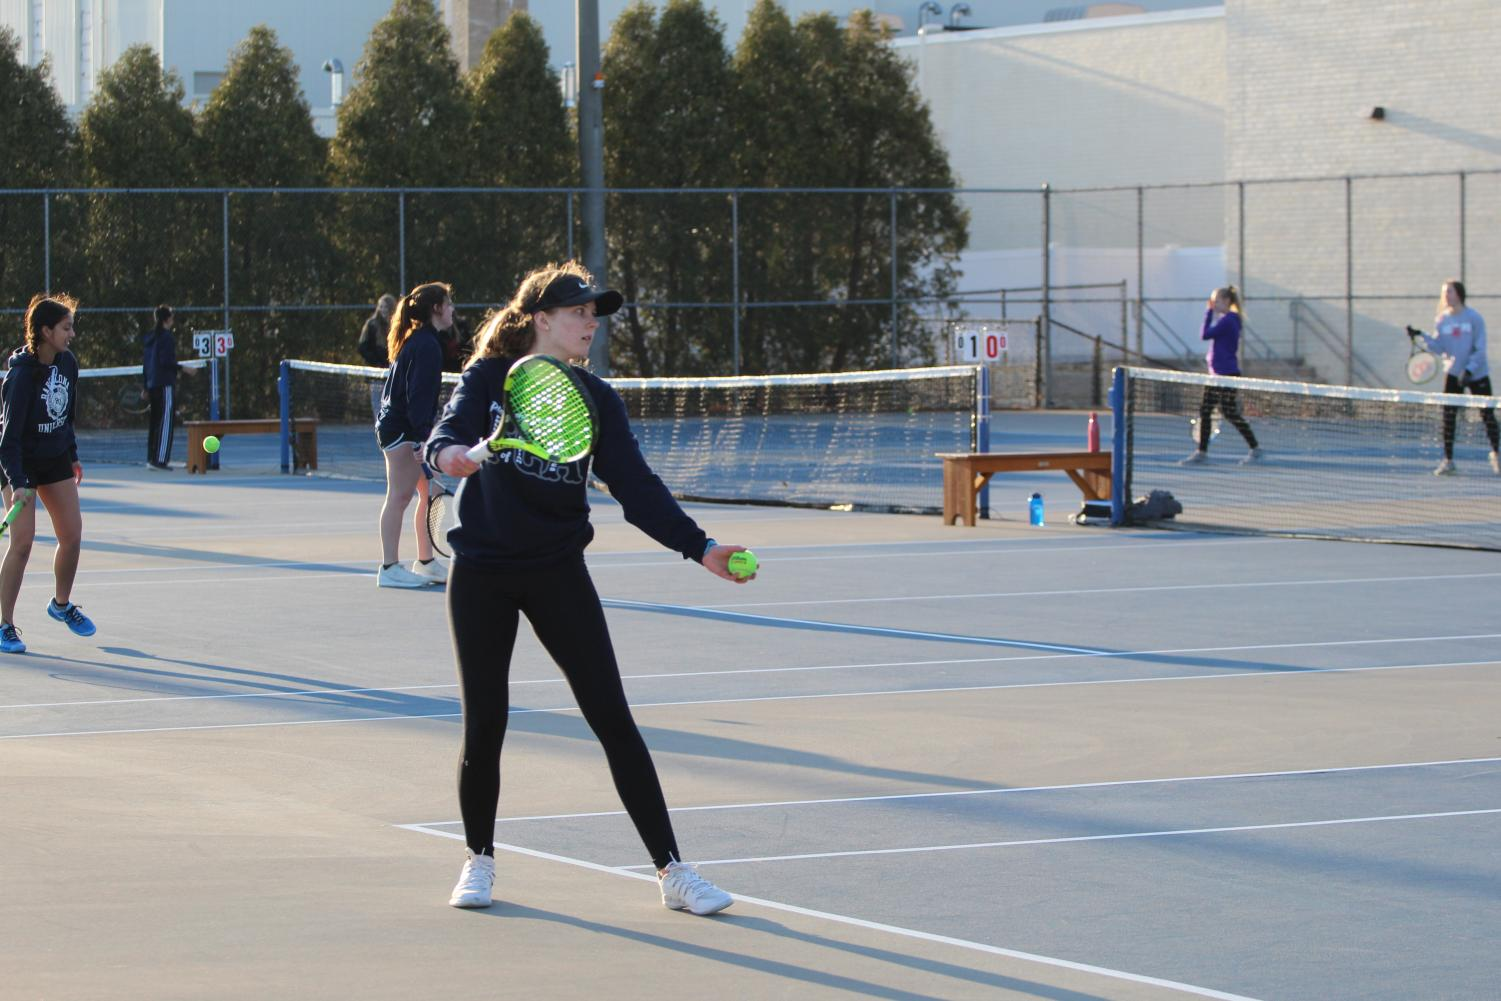 Junior Kayla Nutt preparing to serve against a  North Scott opponent on April 2, 2019.